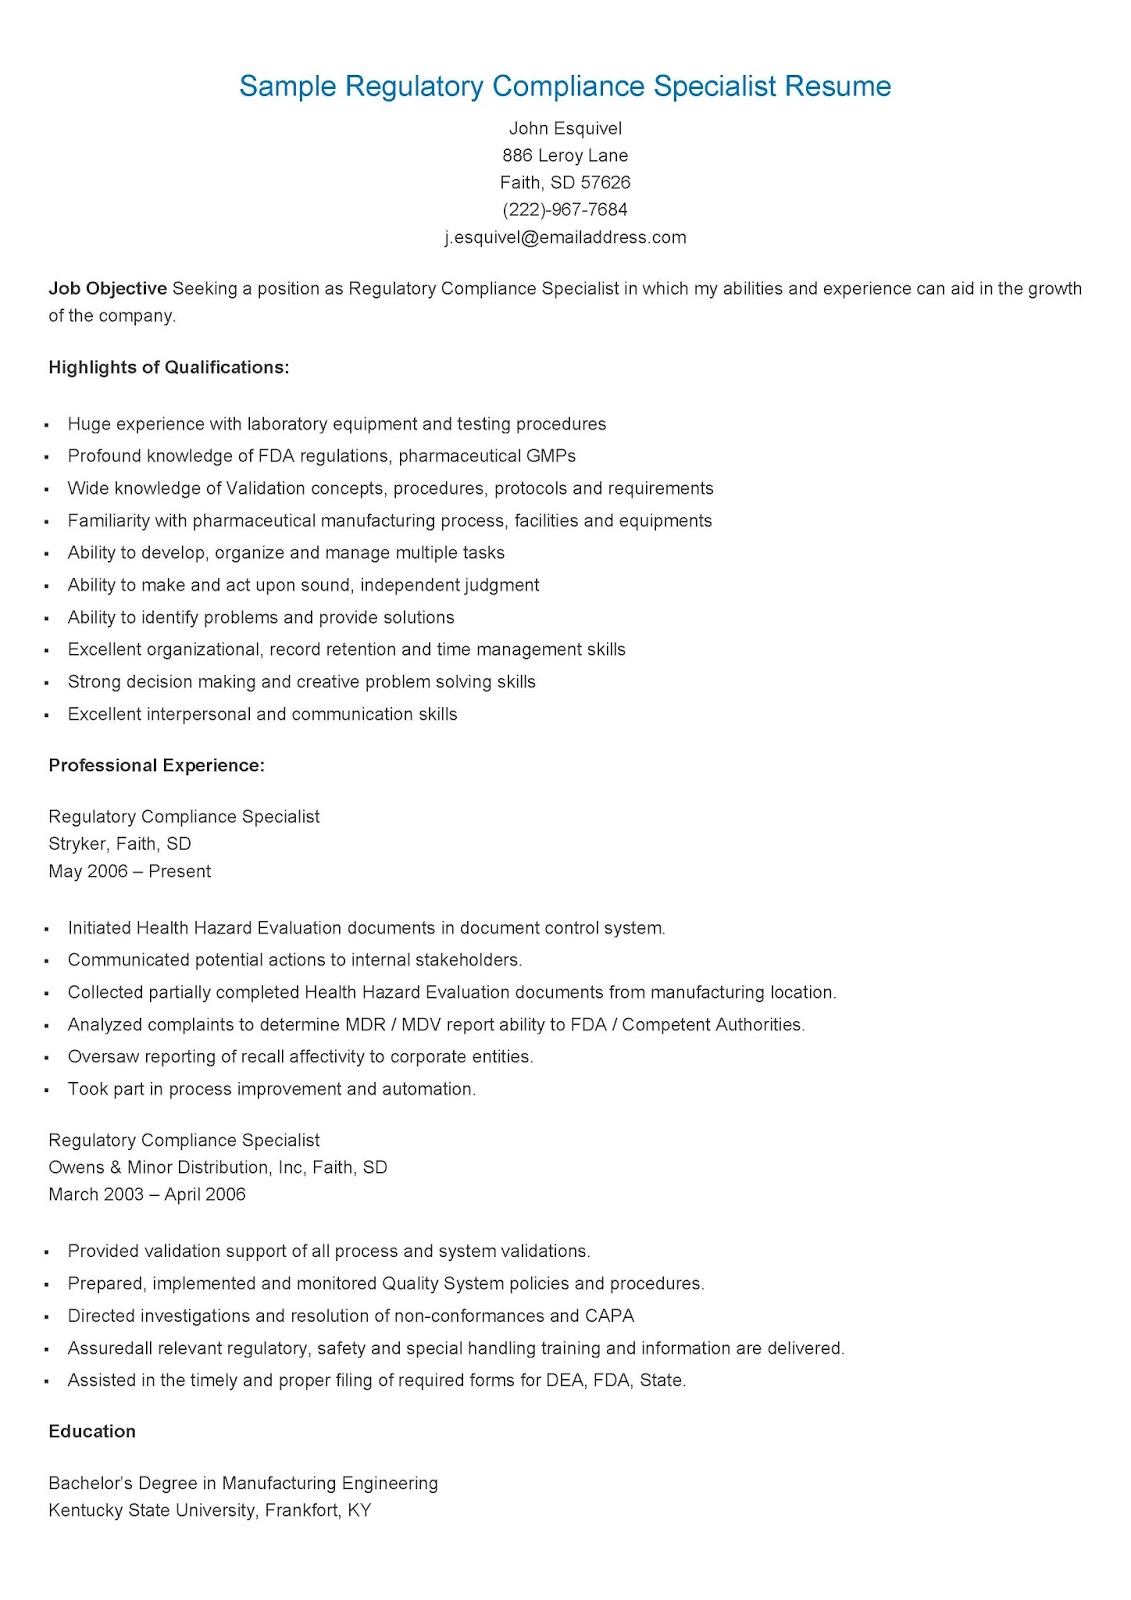 Resume Samples Sample Regulatory pliance Specialist Resume